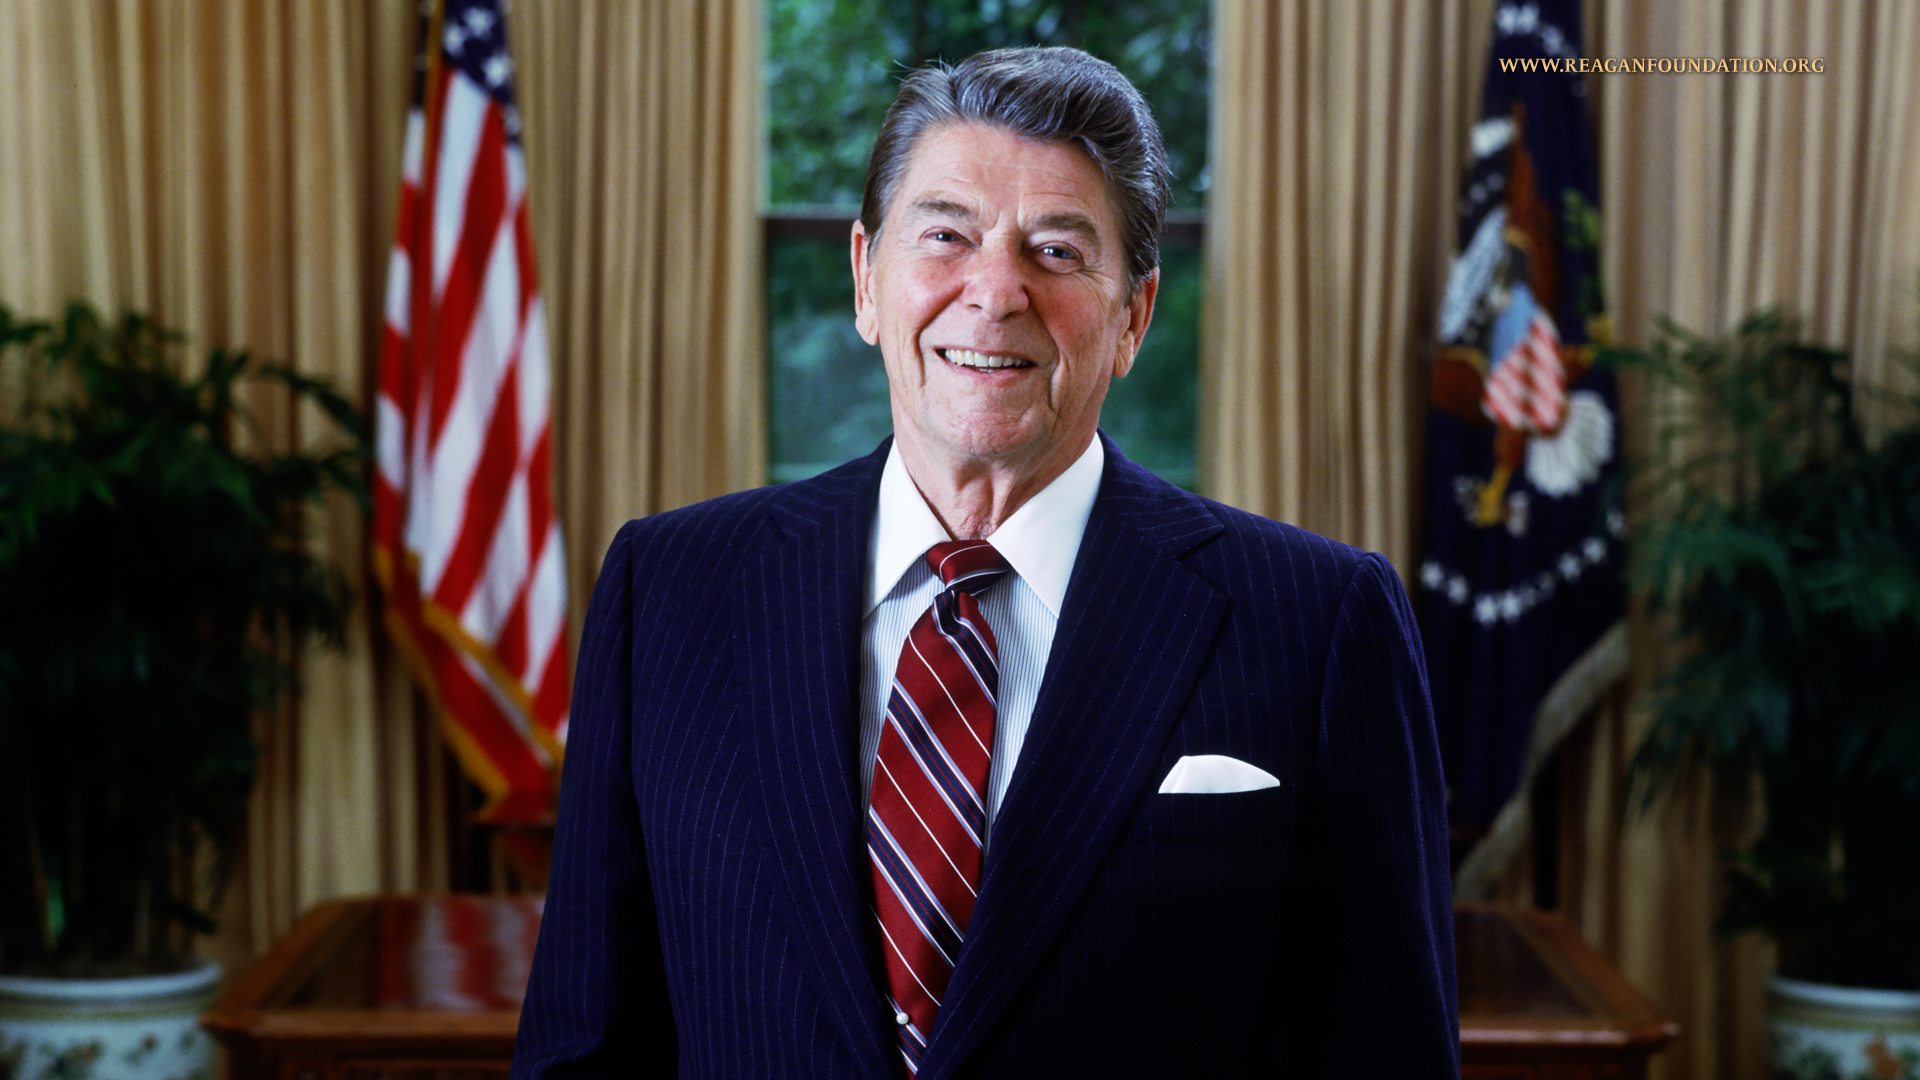 Official portrait of President Ronald Reagan, taken in the Oval Office of the White House, Washington, D..C. on June 3, 1985.